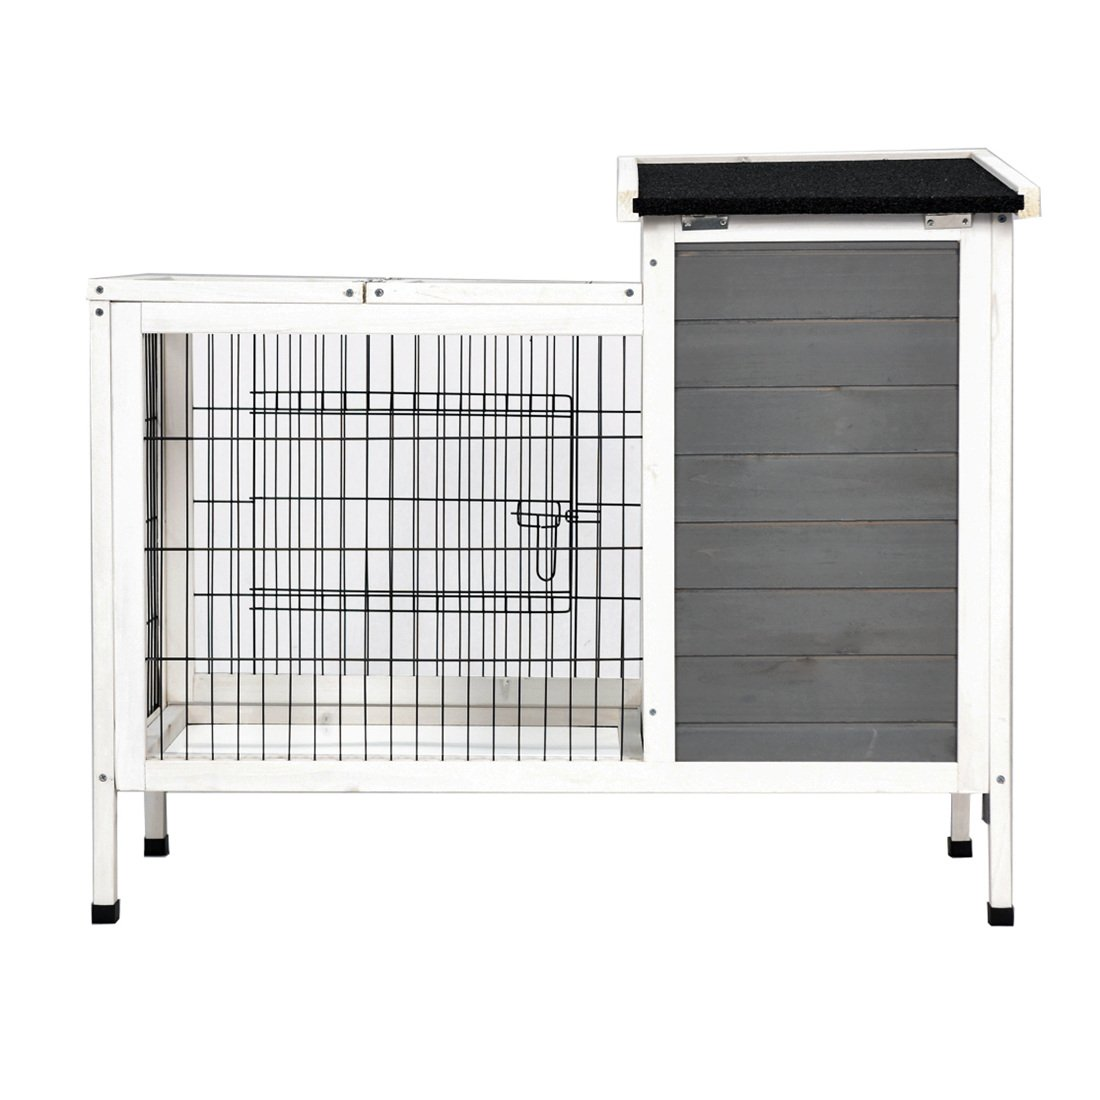 Good Life Wooden Outdoor Bunny Hutch Rabbit Cage Guinea Pig Coop PET House Gray & White Color PET502 by GOOD LIFE USA (Image #2)